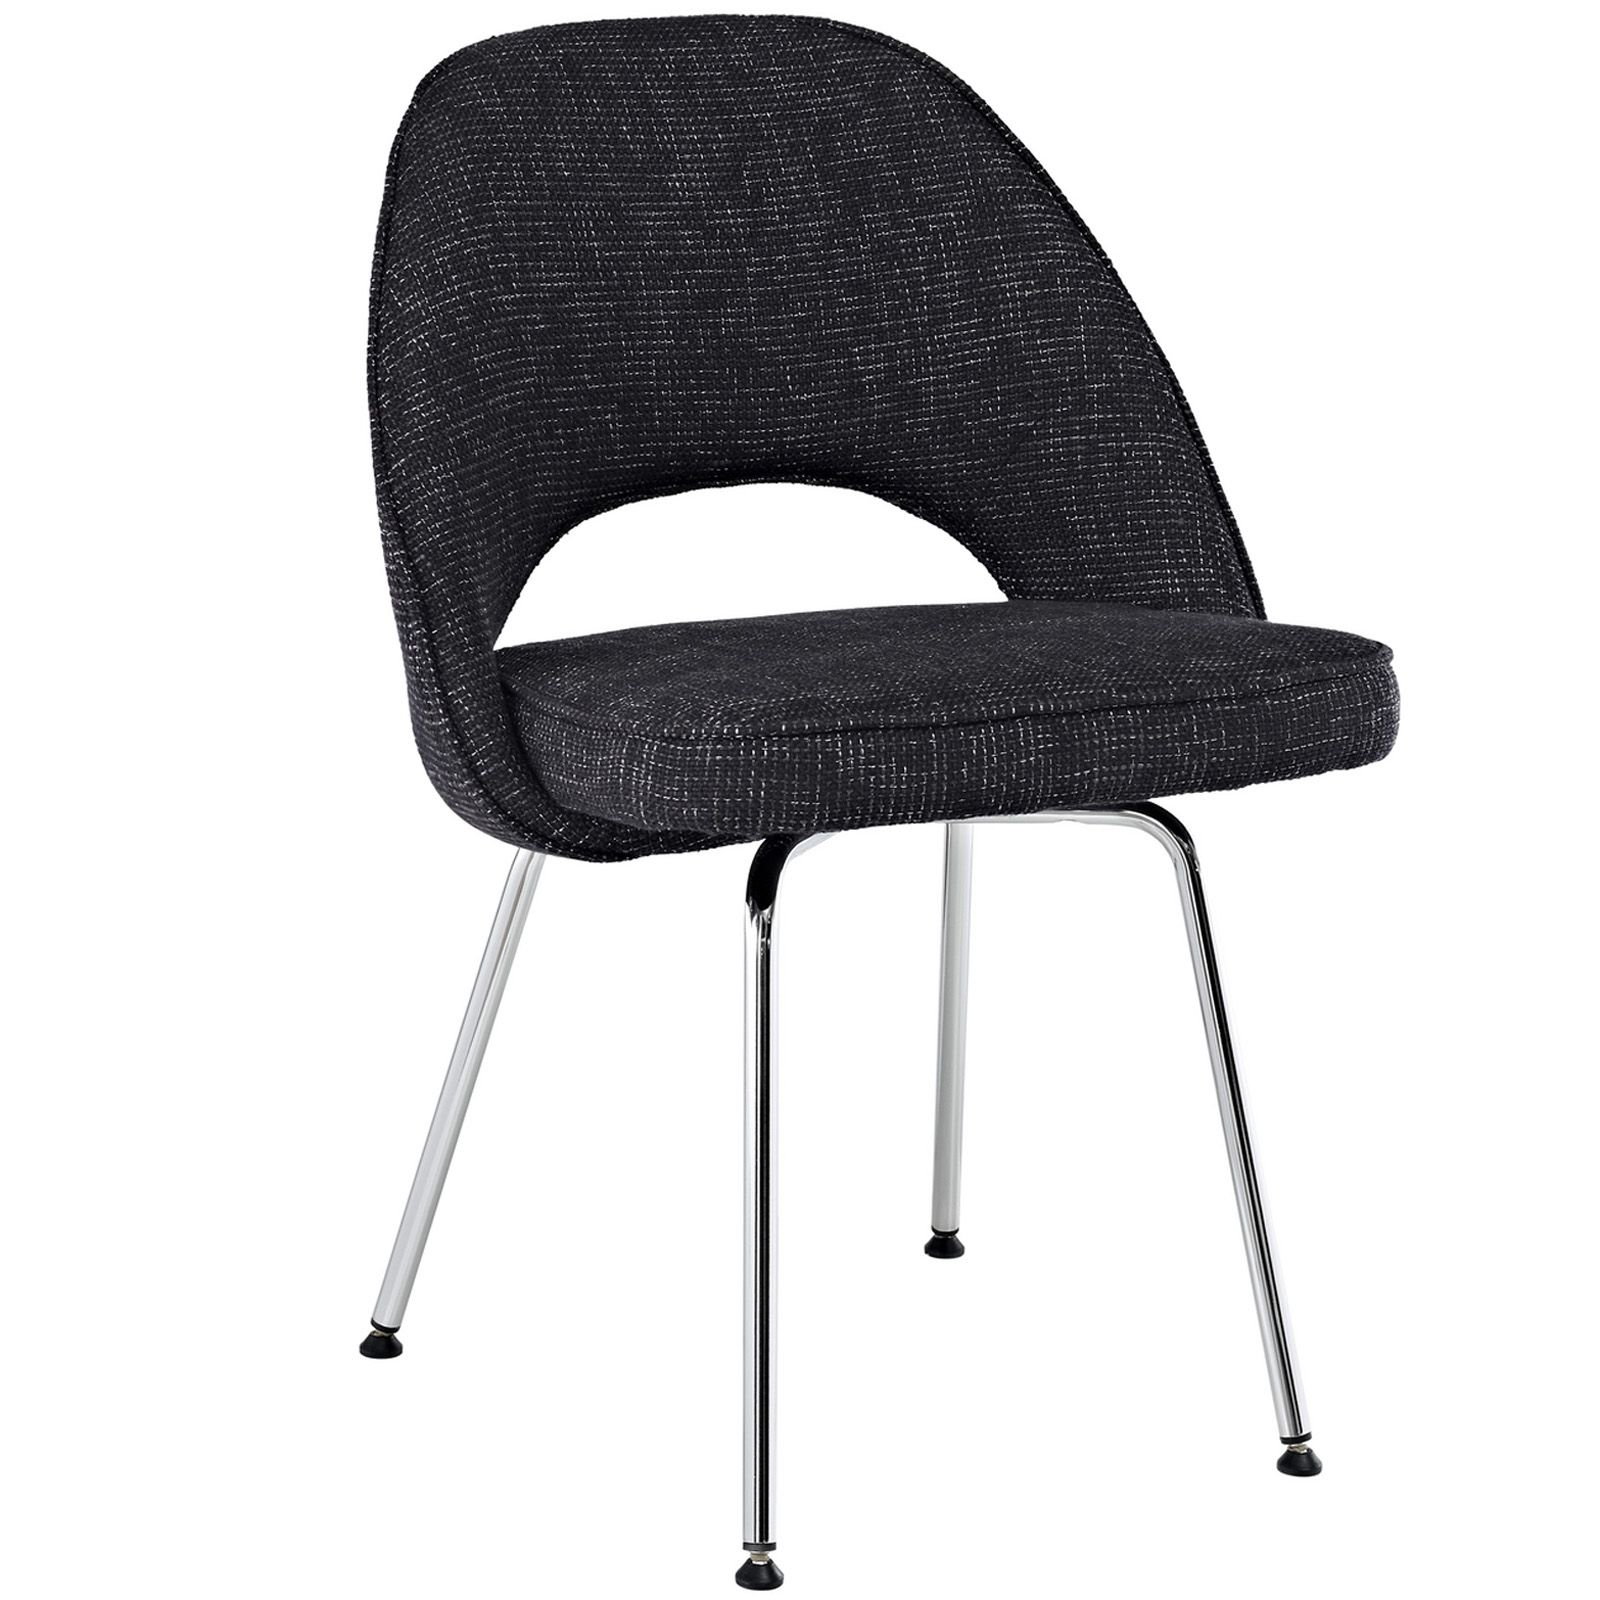 Megan 20 Seat Height Shall I Order Four For The Dining Room